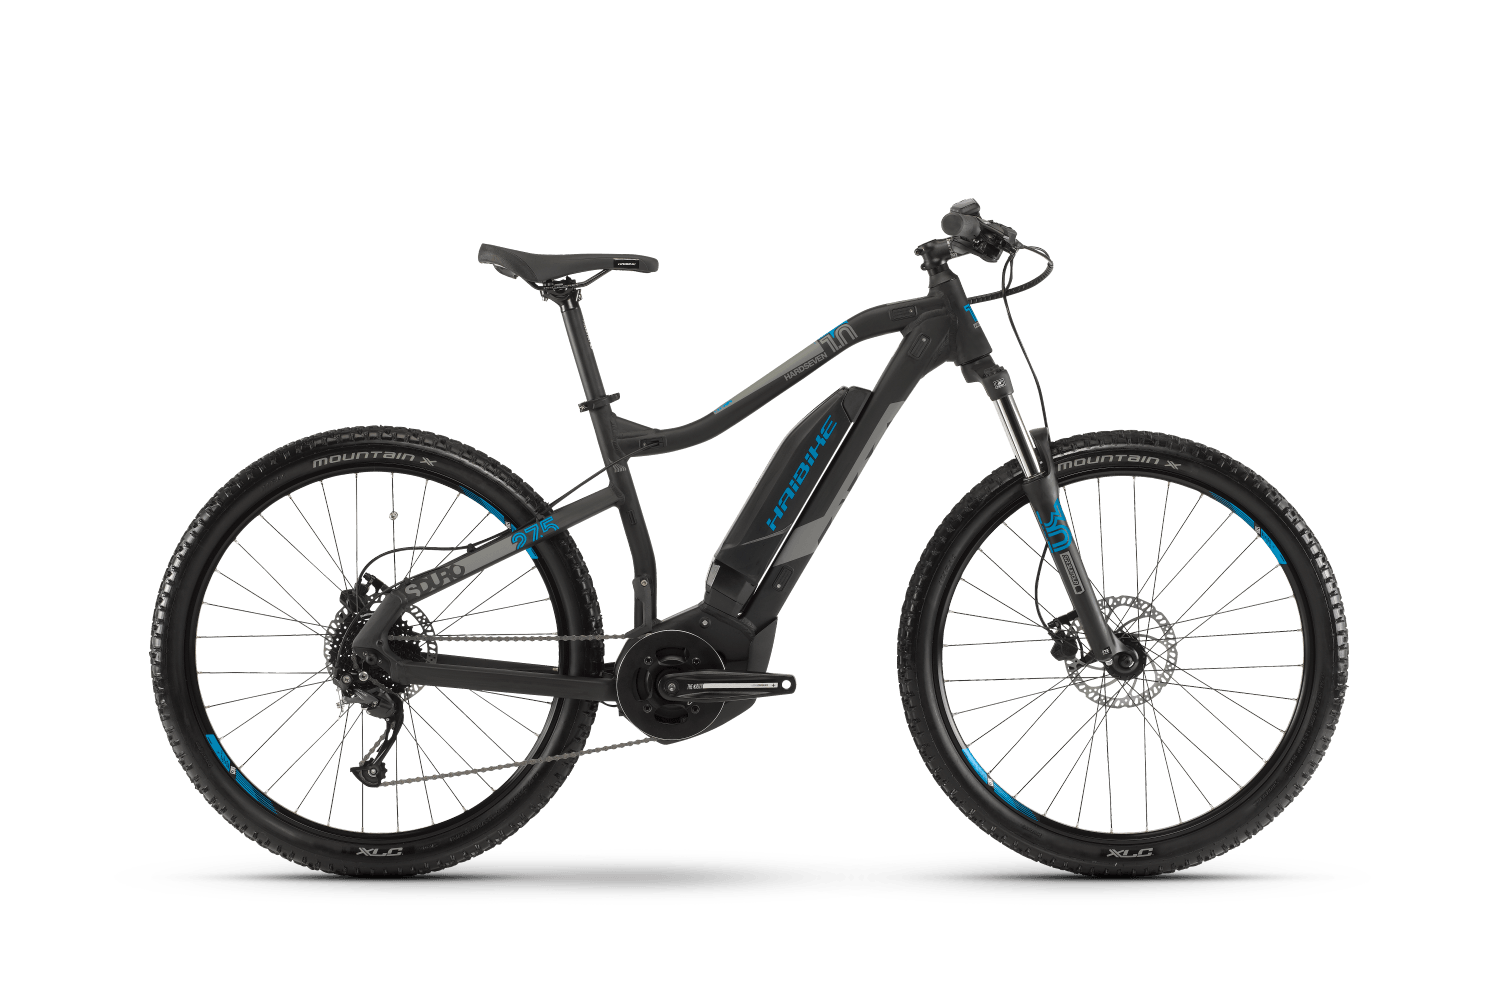 Haibike - The original E-MTB brand, Haibike have a huge range of electric mountain bikes together with trekking and cross models. For some of the maximum fun you can have on two wheels, give us a call and book a test ride today.